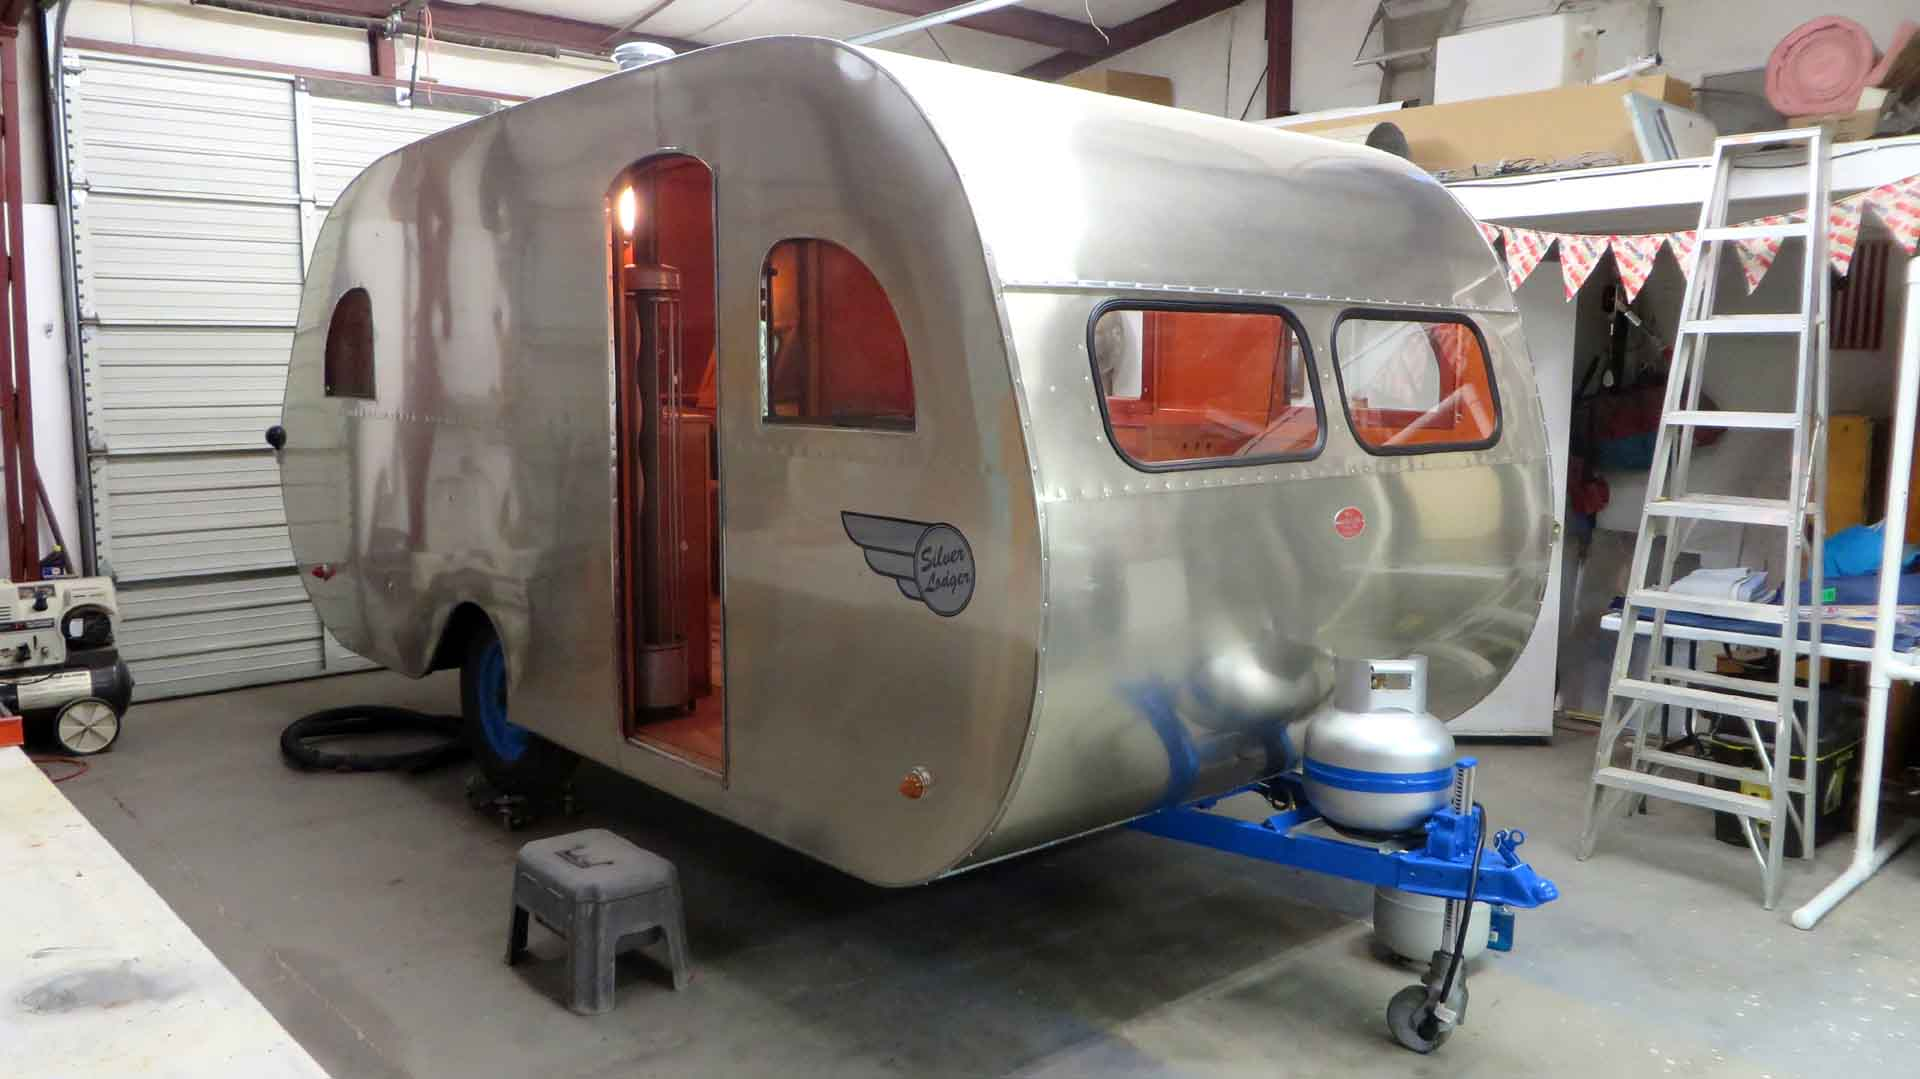 http://www.cannedhamtrailers.com/forum/47mainline/mainlineclose.jpg